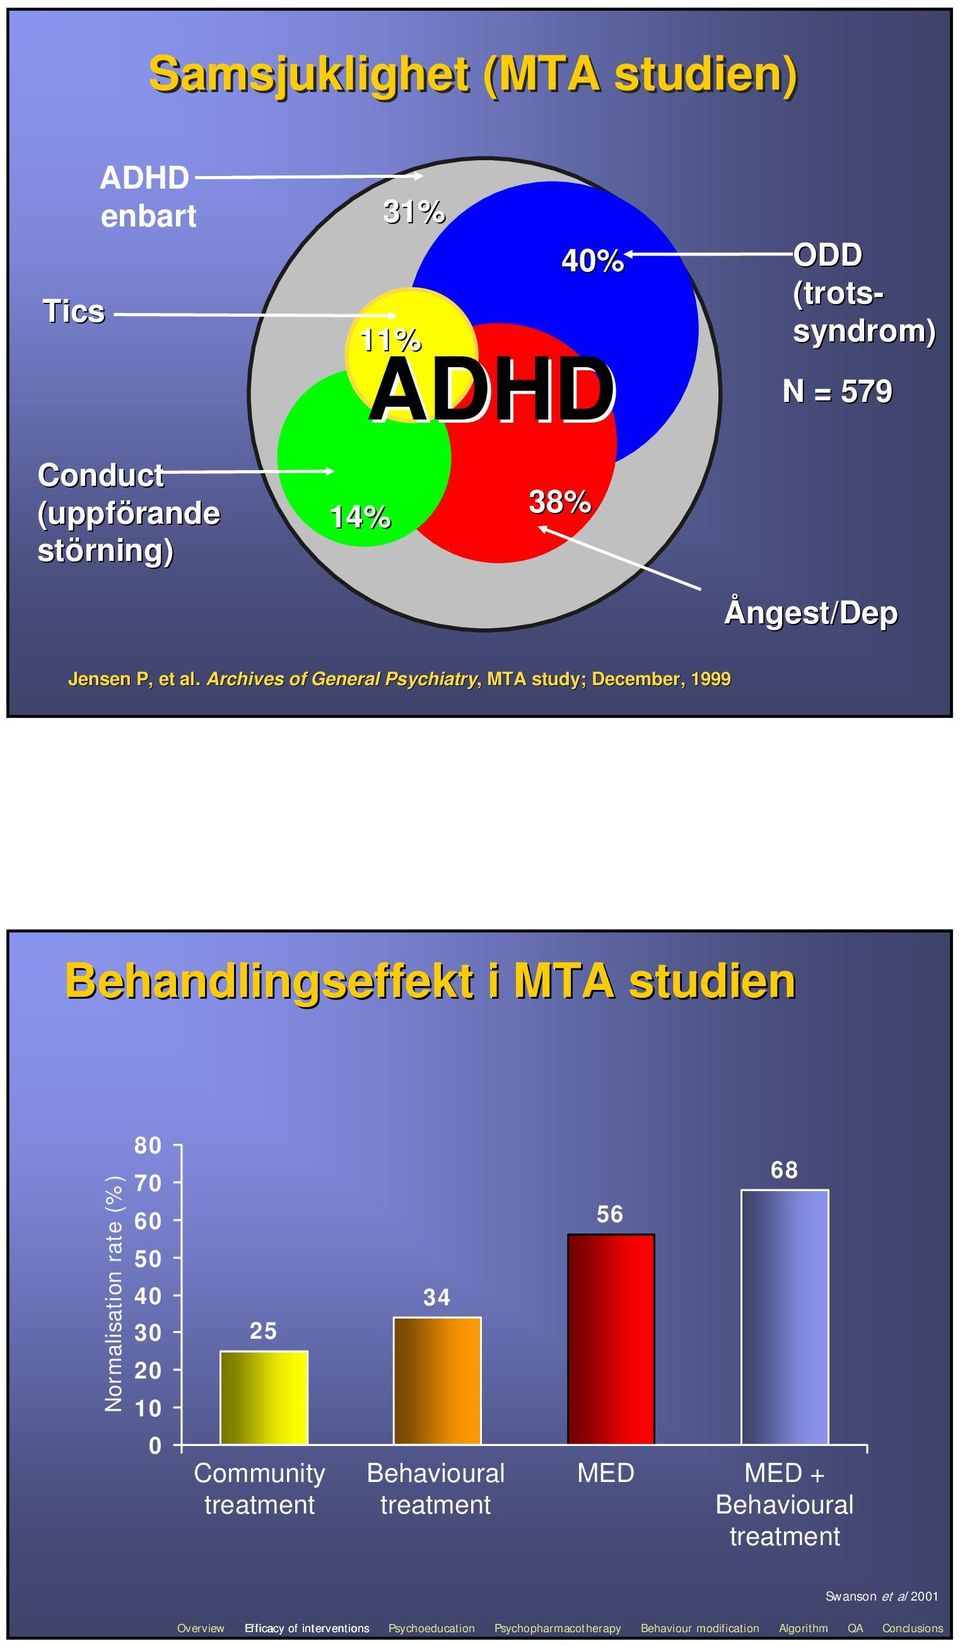 Archives of General Psychiatry,, MTA study; December, 1999 Behandlingseffekt i MTA studien Normalisation rate (%) 80 70 60 50 40 30